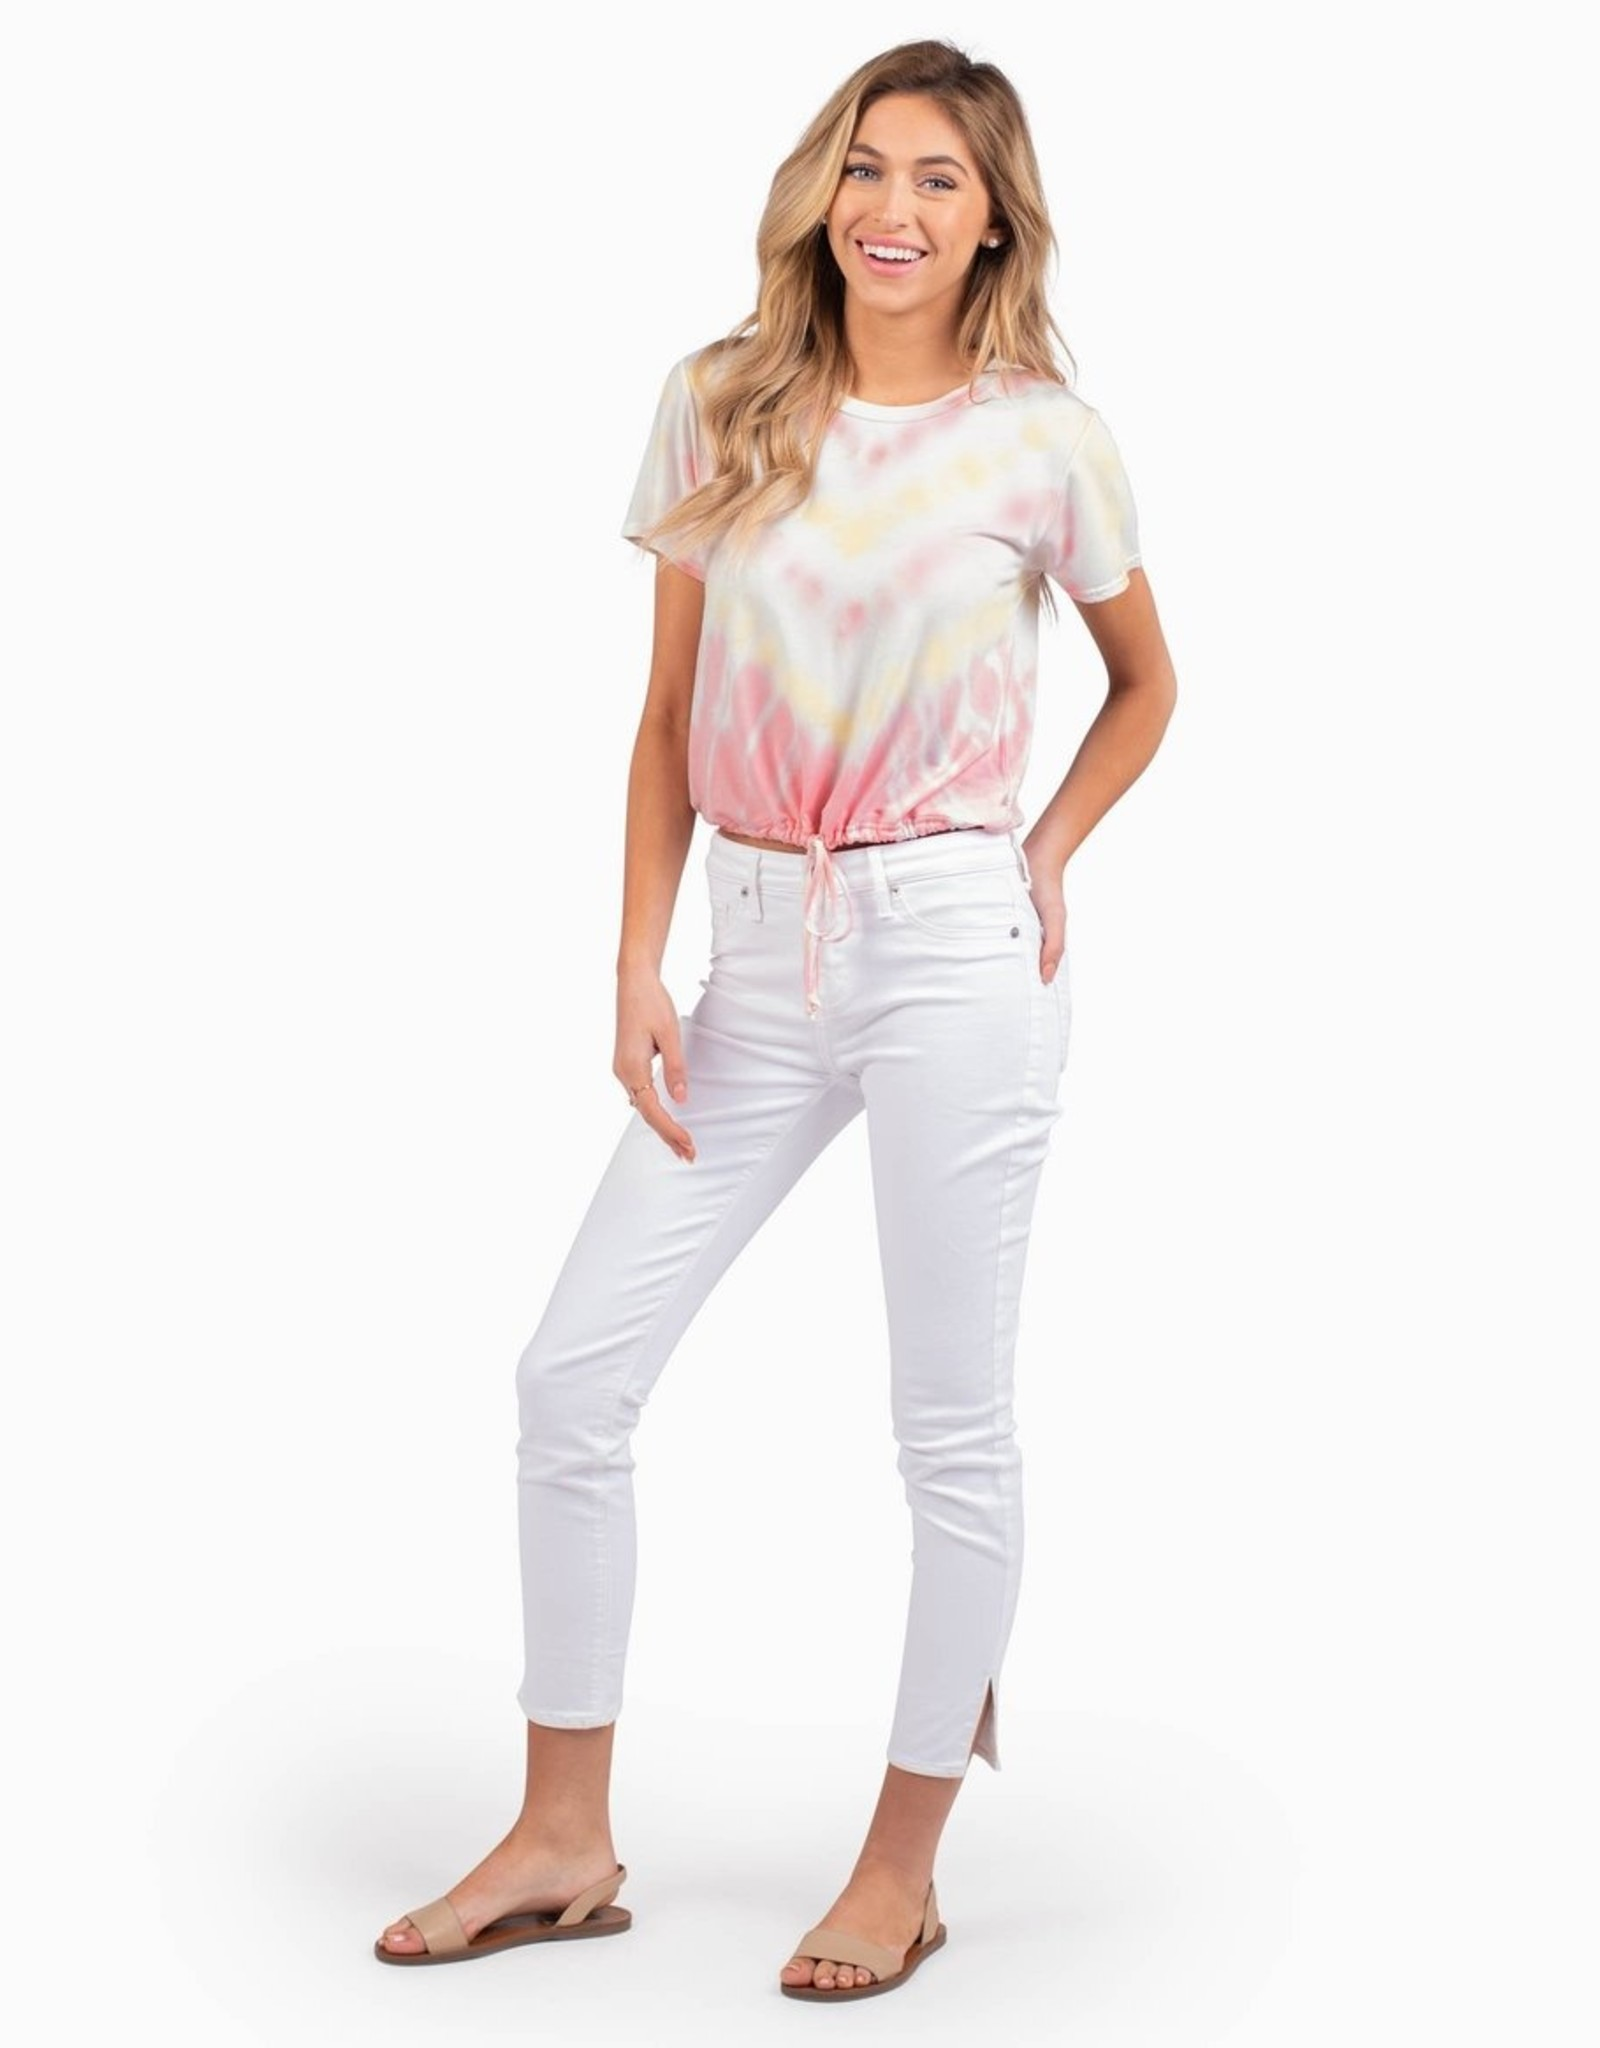 Southern Shirt Southern Shirt 2J040 Dazed and Confused Crop